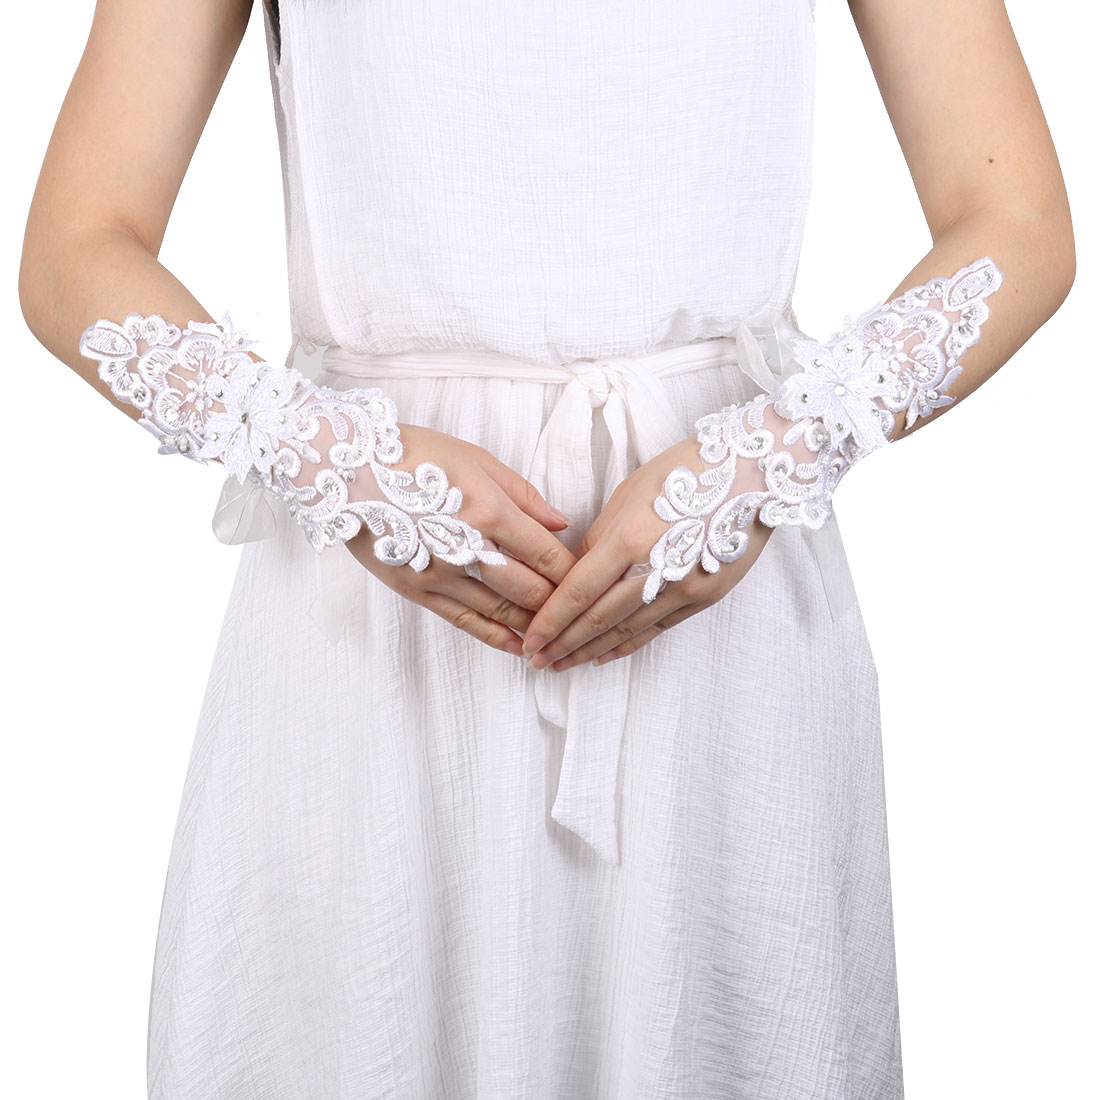 Show Polyester Flower Style Embroidery Bridesmaid Hand Decorative Lace Fingerless Glove Pair